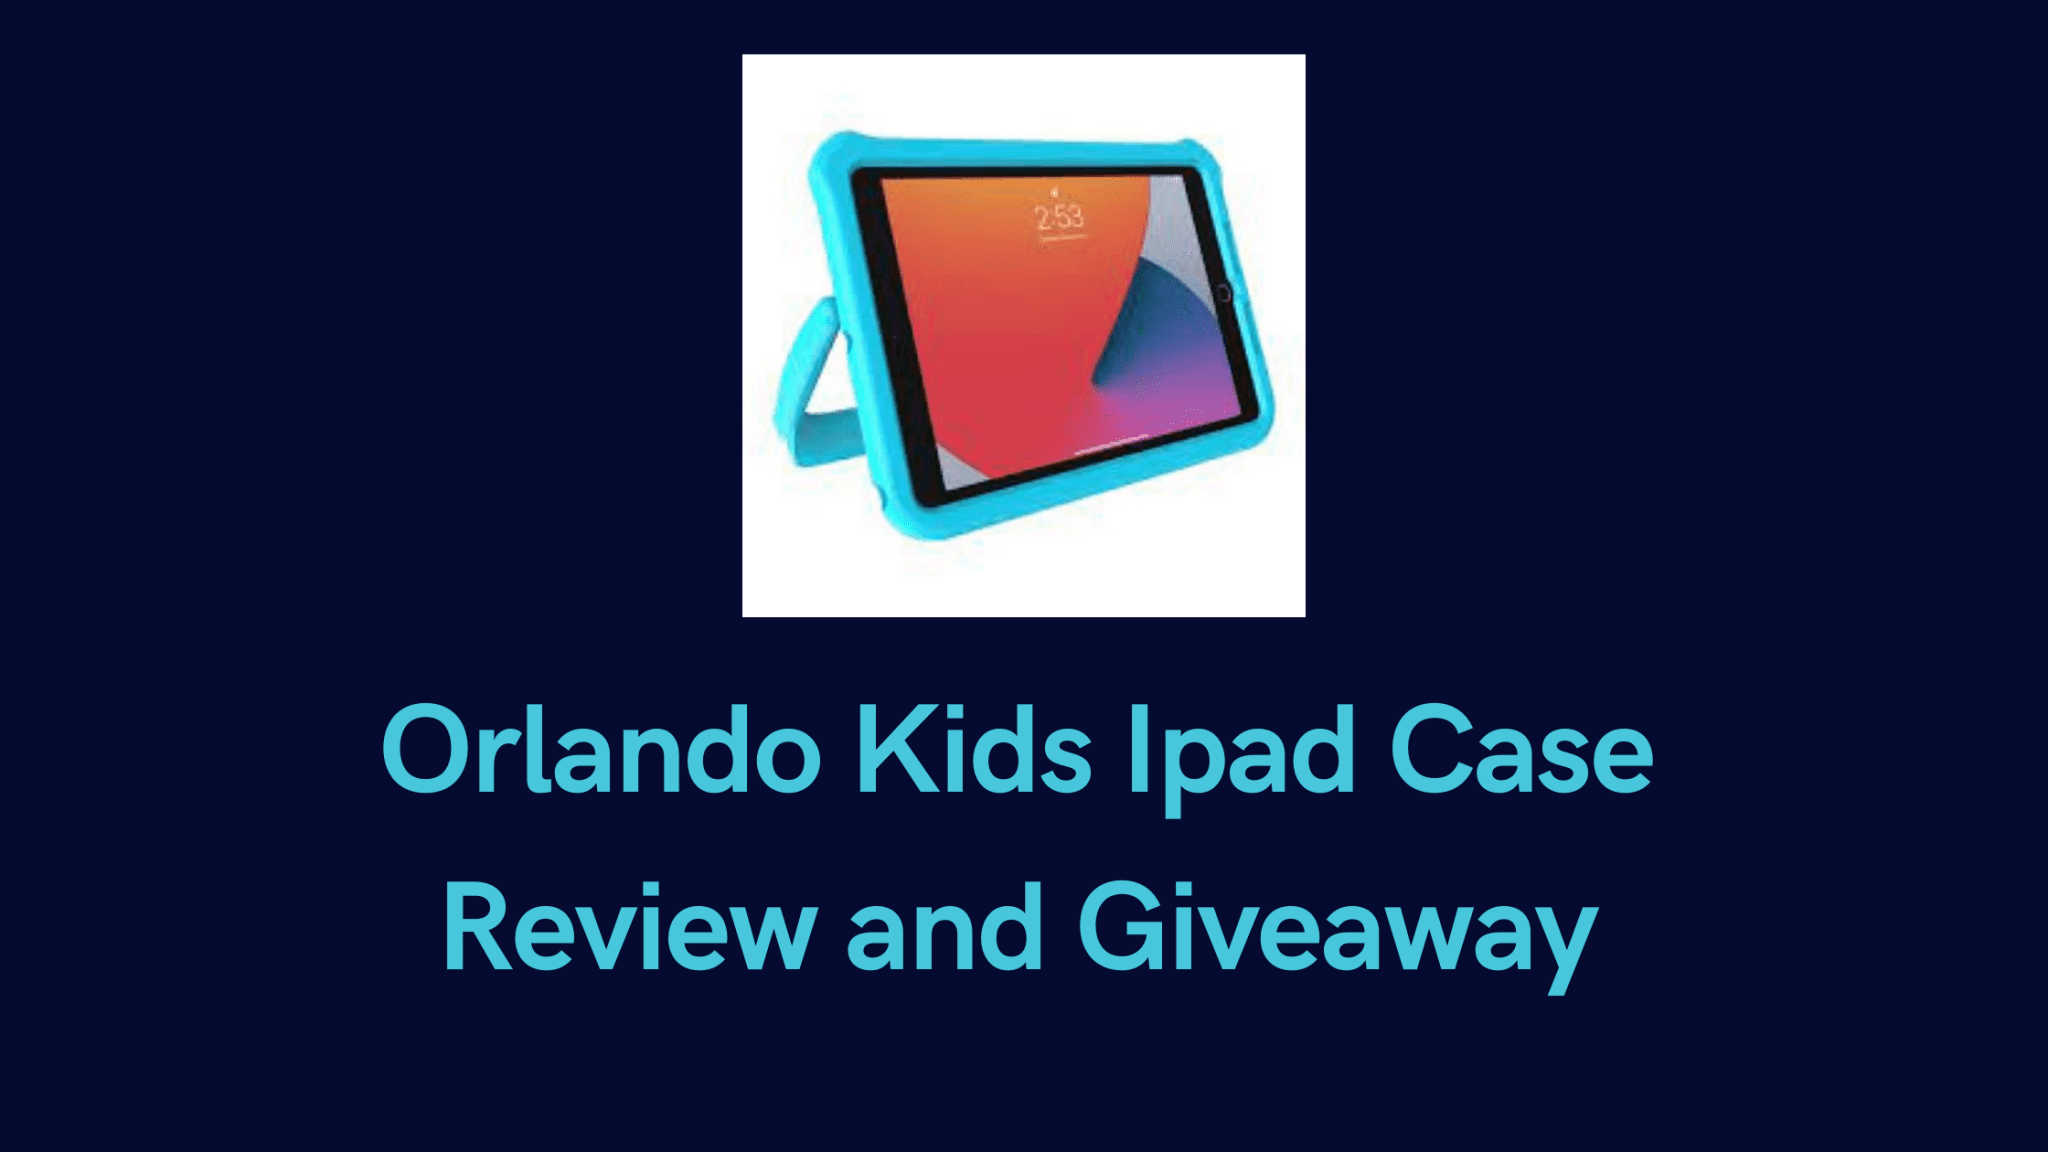 Orlando Kids Ipad Case Review and Giveaway